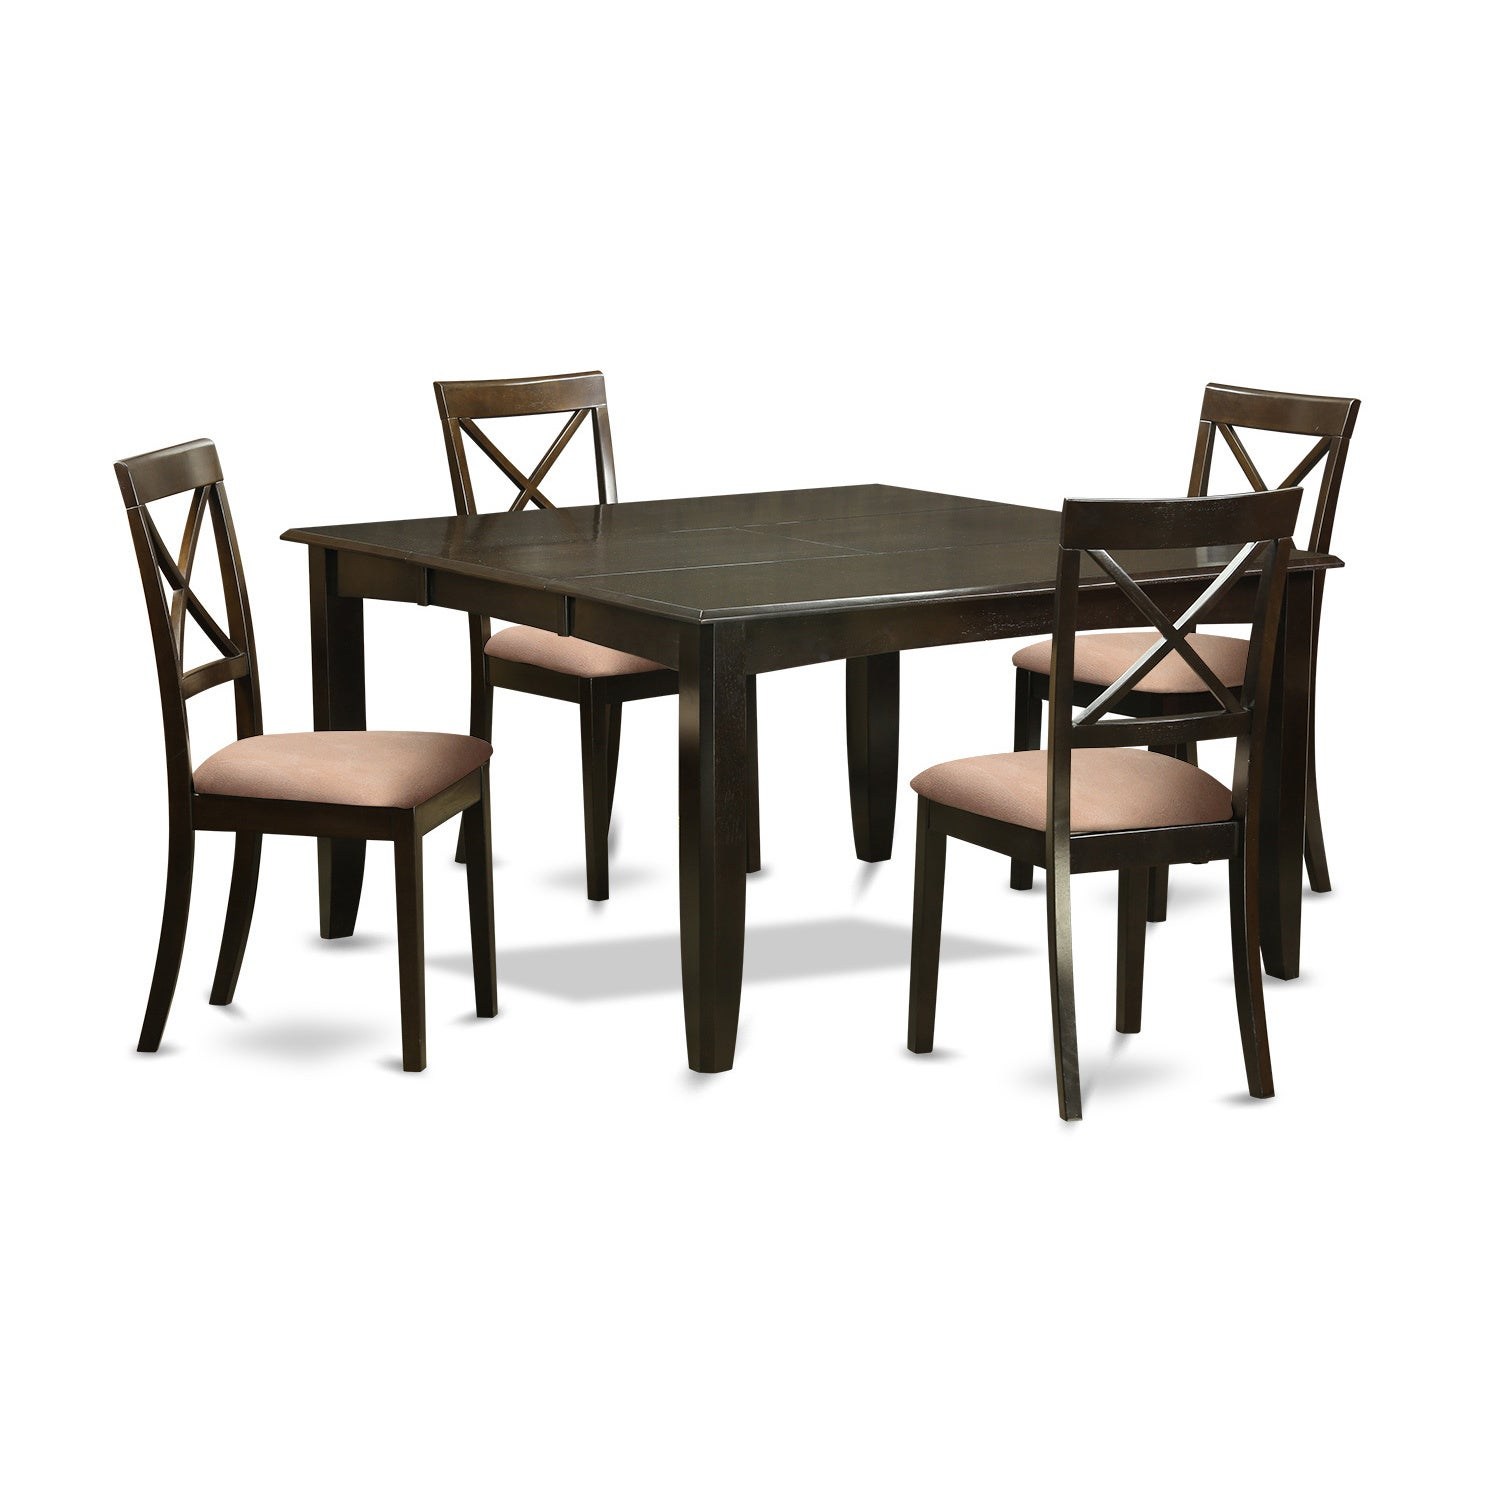 Buy 5 Piece Sets, Wood Kitchen & Dining Room Sets Online At Within Newest Goodman 5 Piece Solid Wood Dining Sets (Set Of 5) (Image 5 of 20)